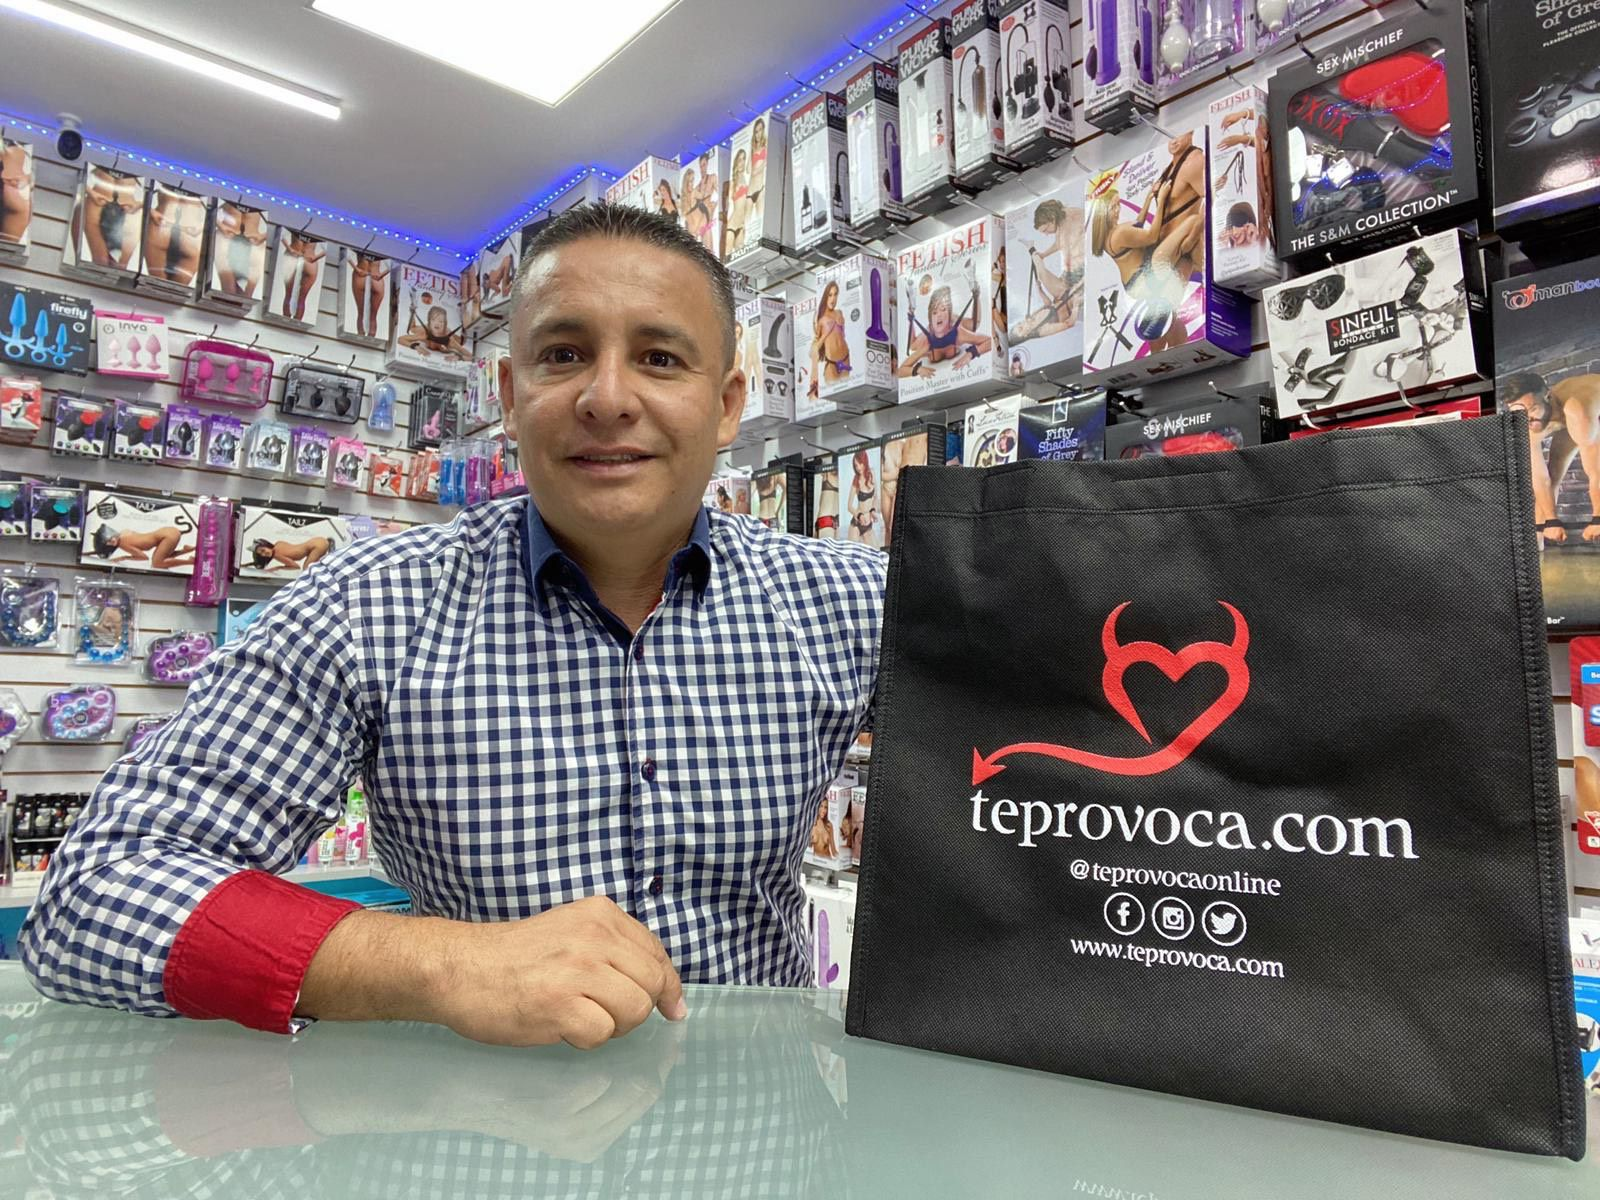 Teprovoca.com is the Fastest Growing Sex Shop in the Americas: Providing Customers with Sex Toys and Education